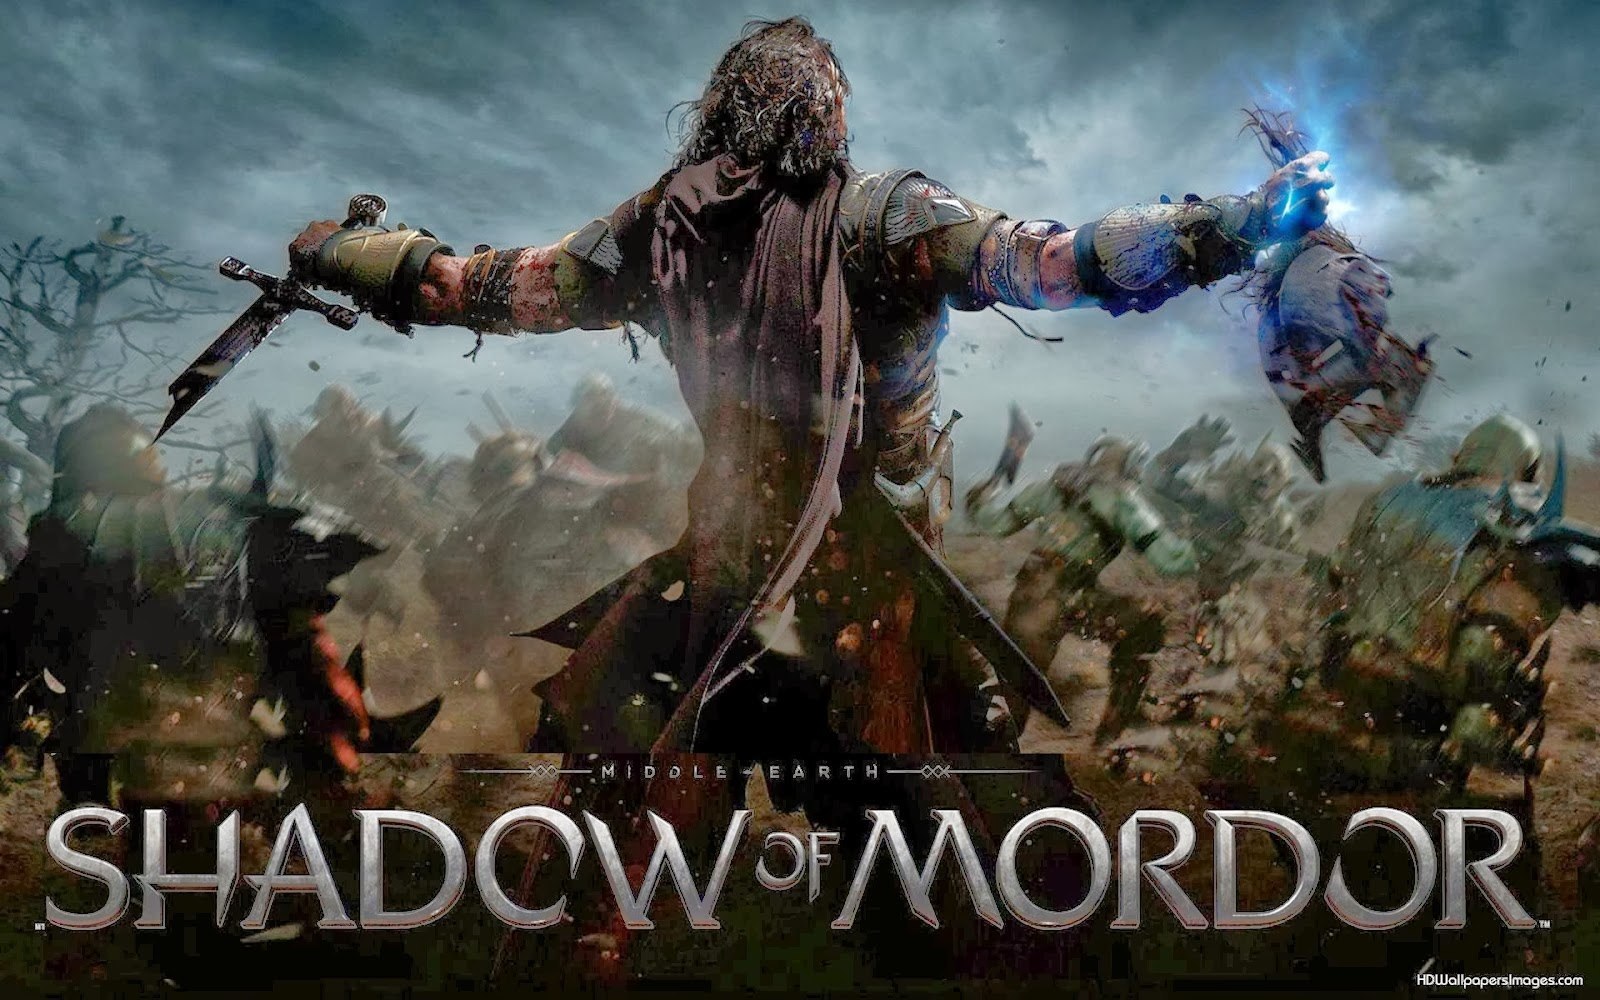 Middle-Earth: Shadow of Mordor от Деда Максима видео, дед максим играет, обзор на заказ от деда максима